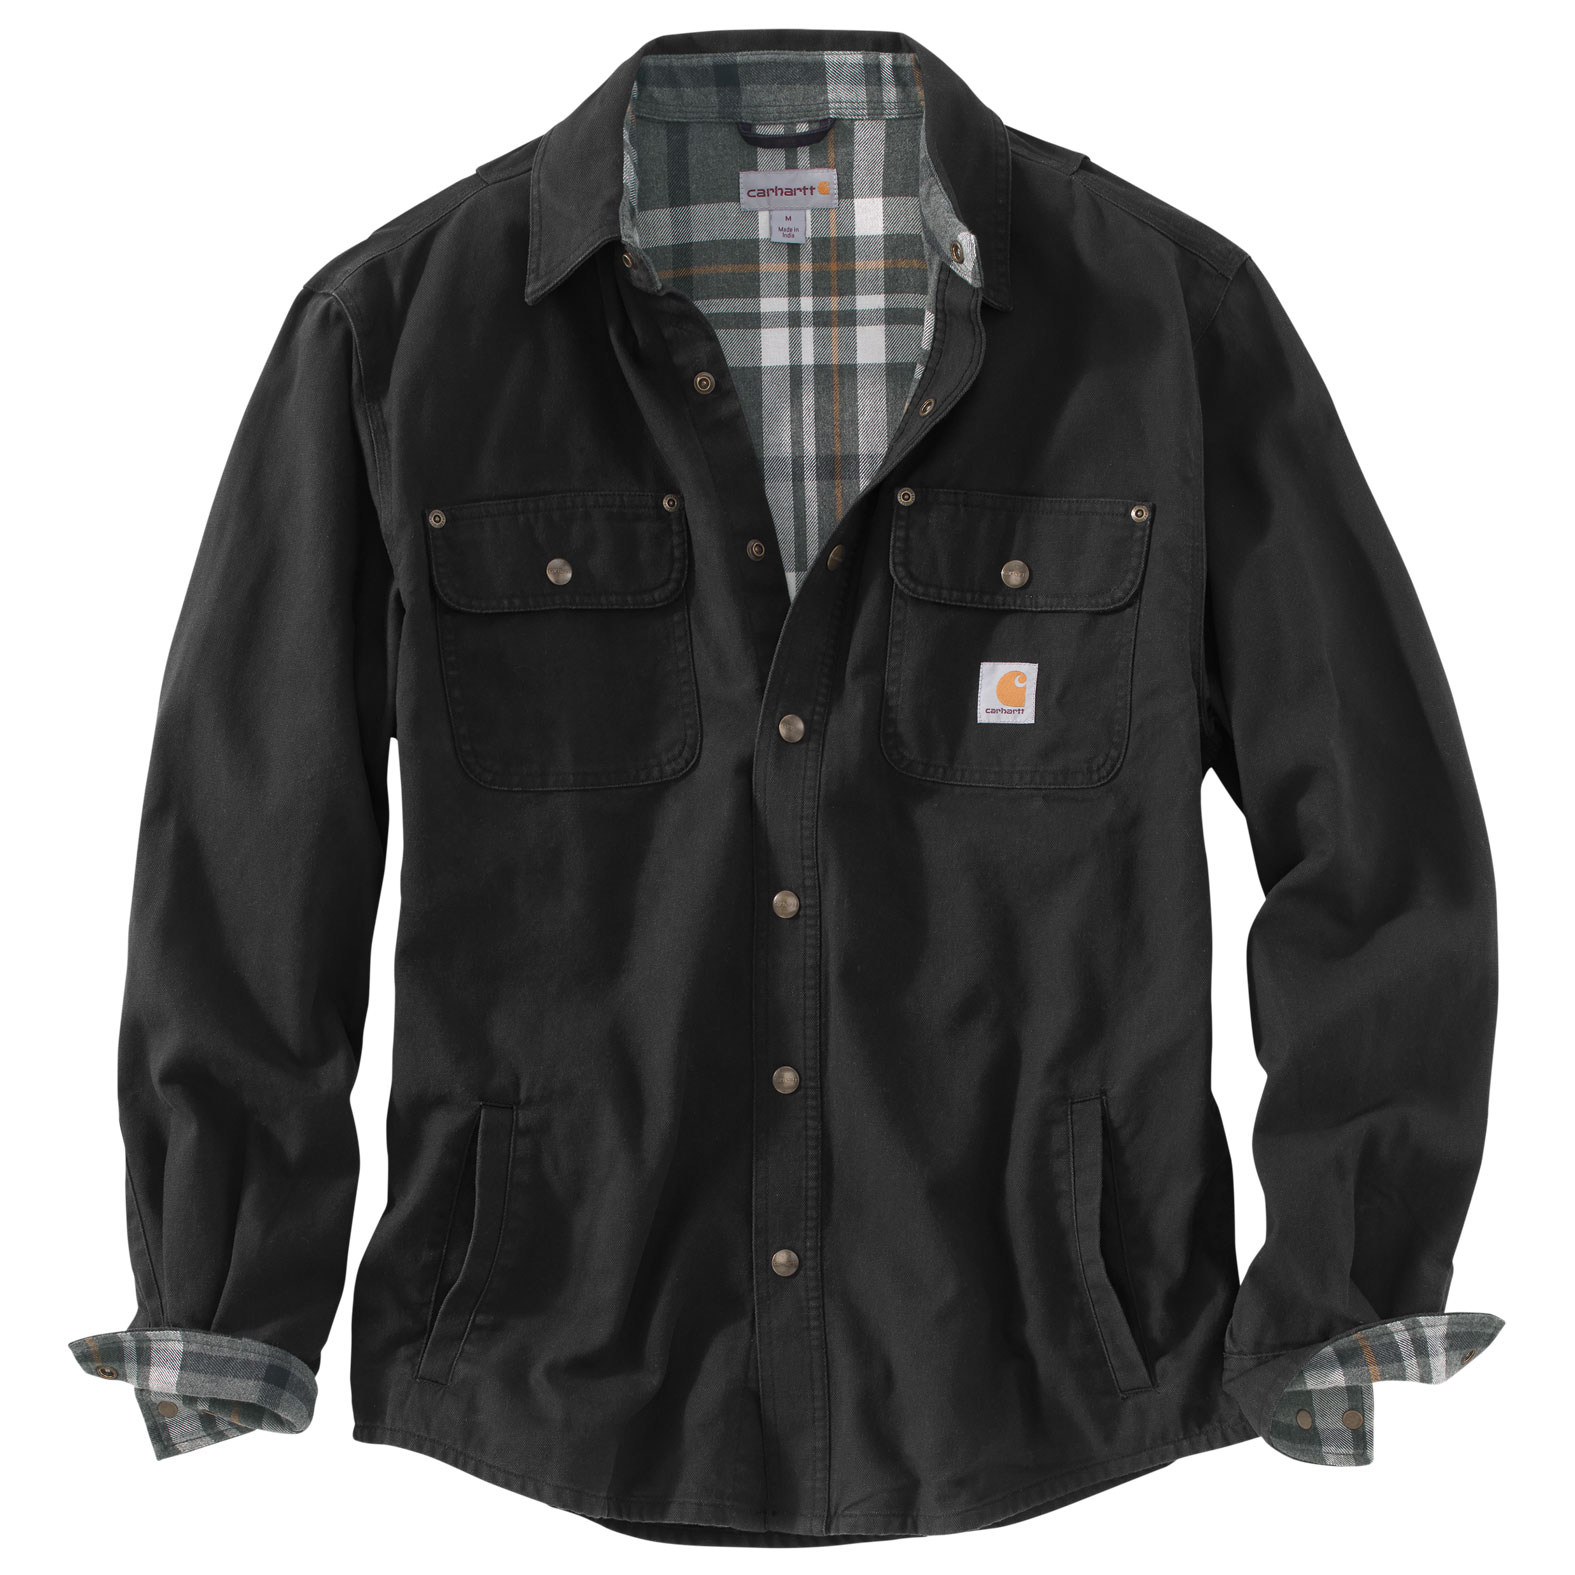 Customize Carhartt Weathered Canvas Shirt Jacket Mens